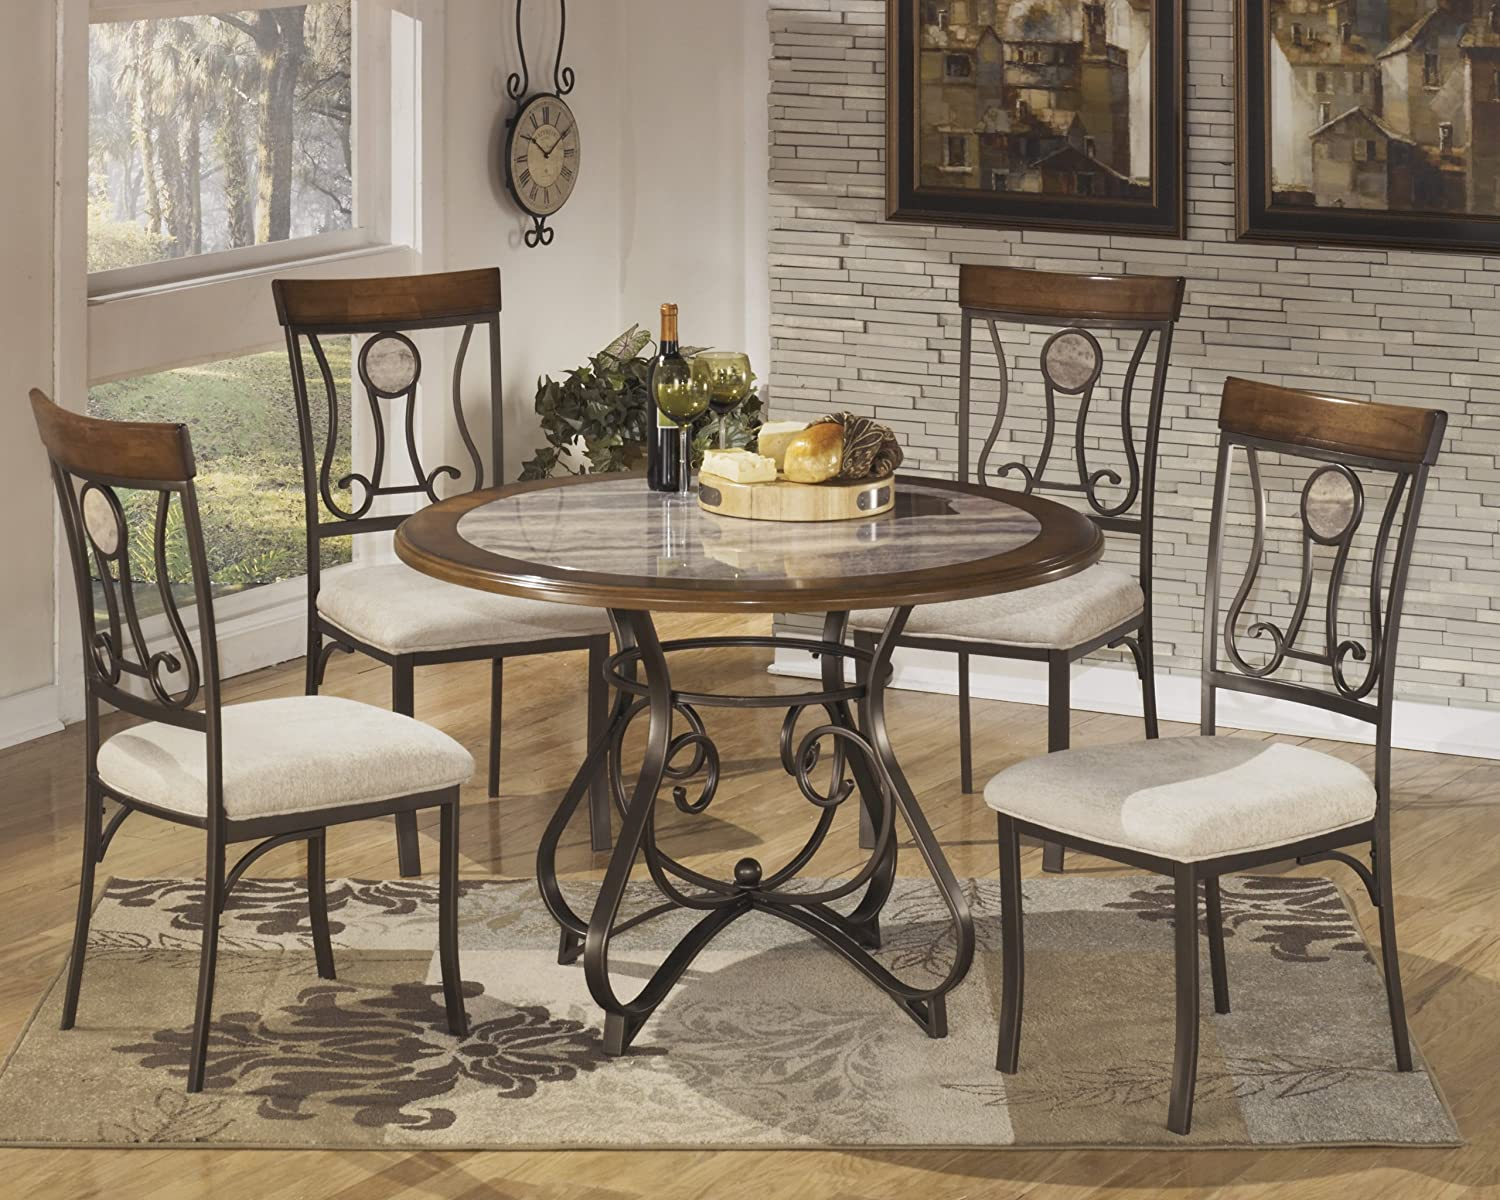 amazon com signature design by ashley d314 15b hopstand amazon com signature design by ashley d314 15b hopstand collection dining room table base only brown tables